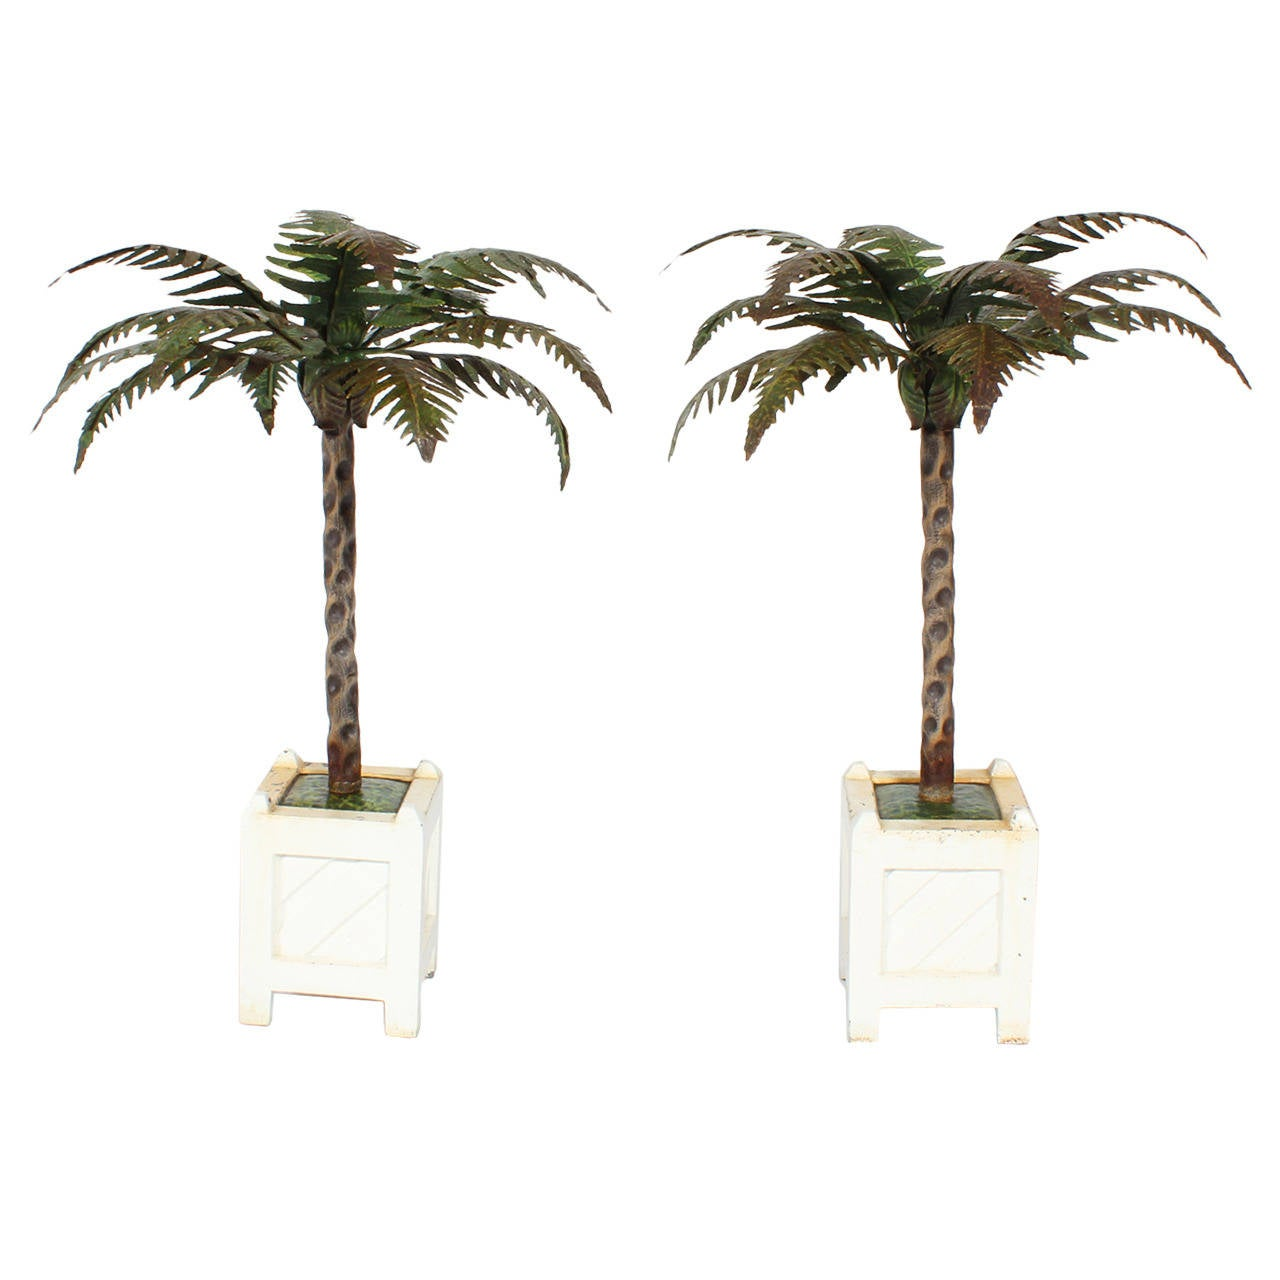 Palm tree candle holders image antique and candle victimassist bonita springs fl heaven scent flowers inc palm tree candlesticks mightylinksfo